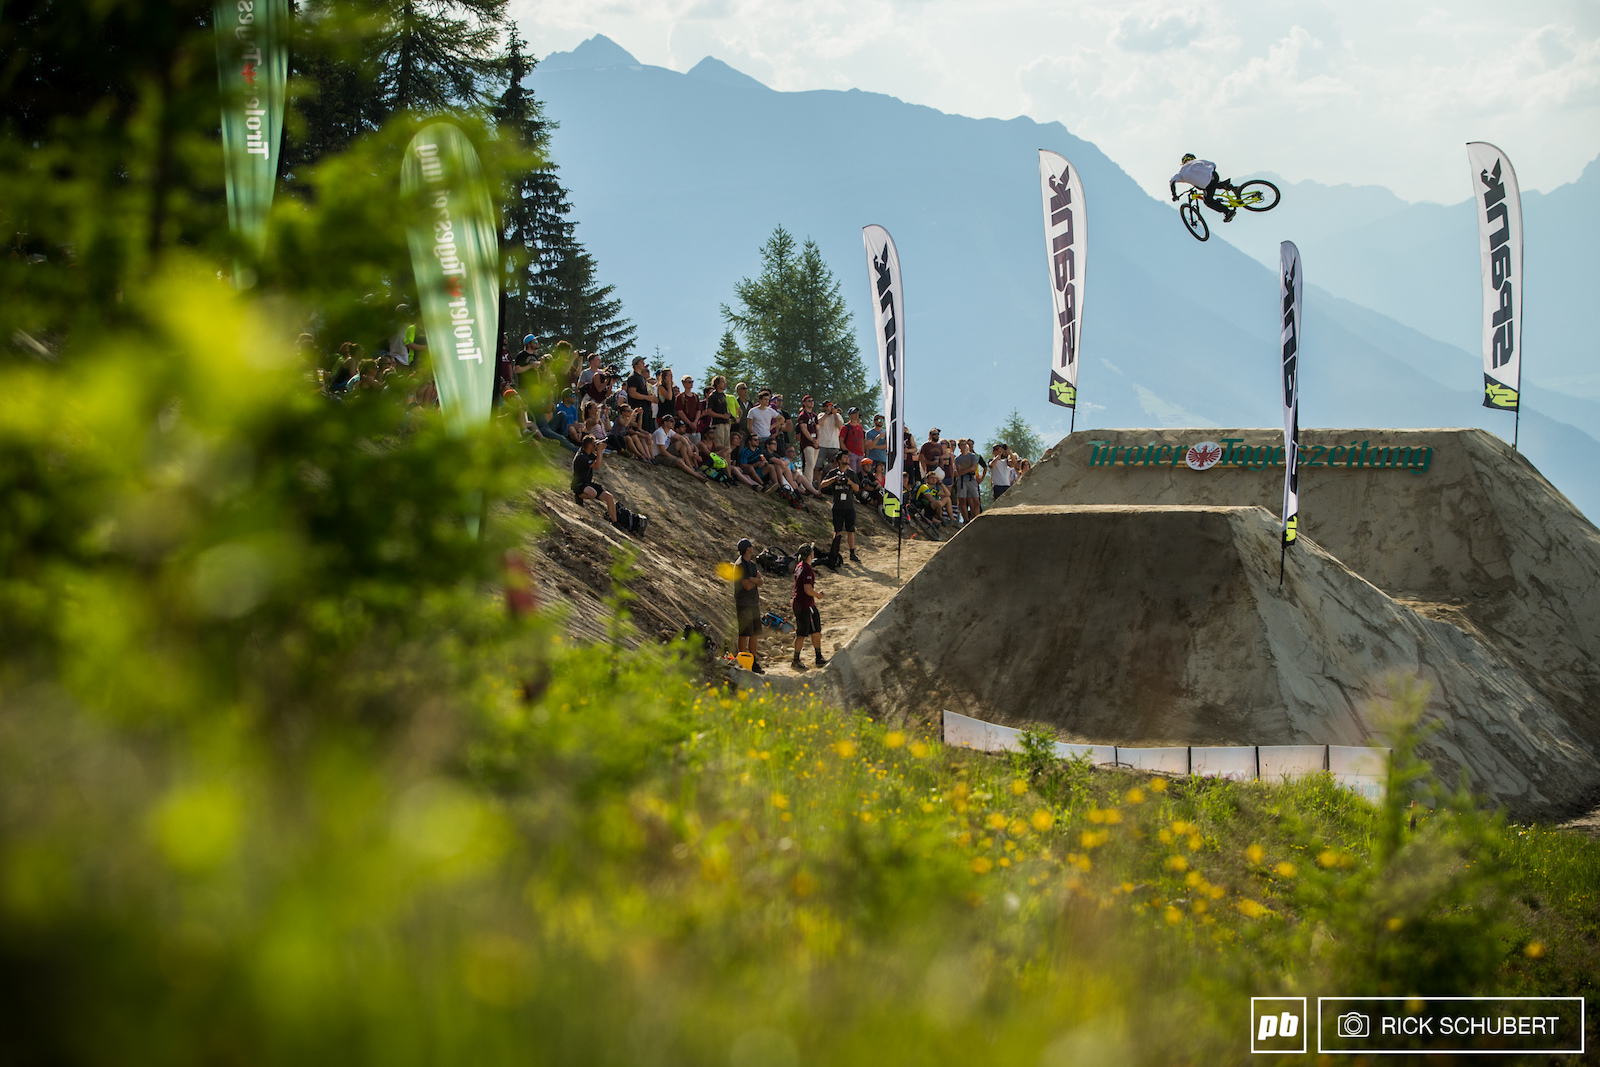 Jackson Davis was one of the first riders to attempt the massive jump and made it look easy right away